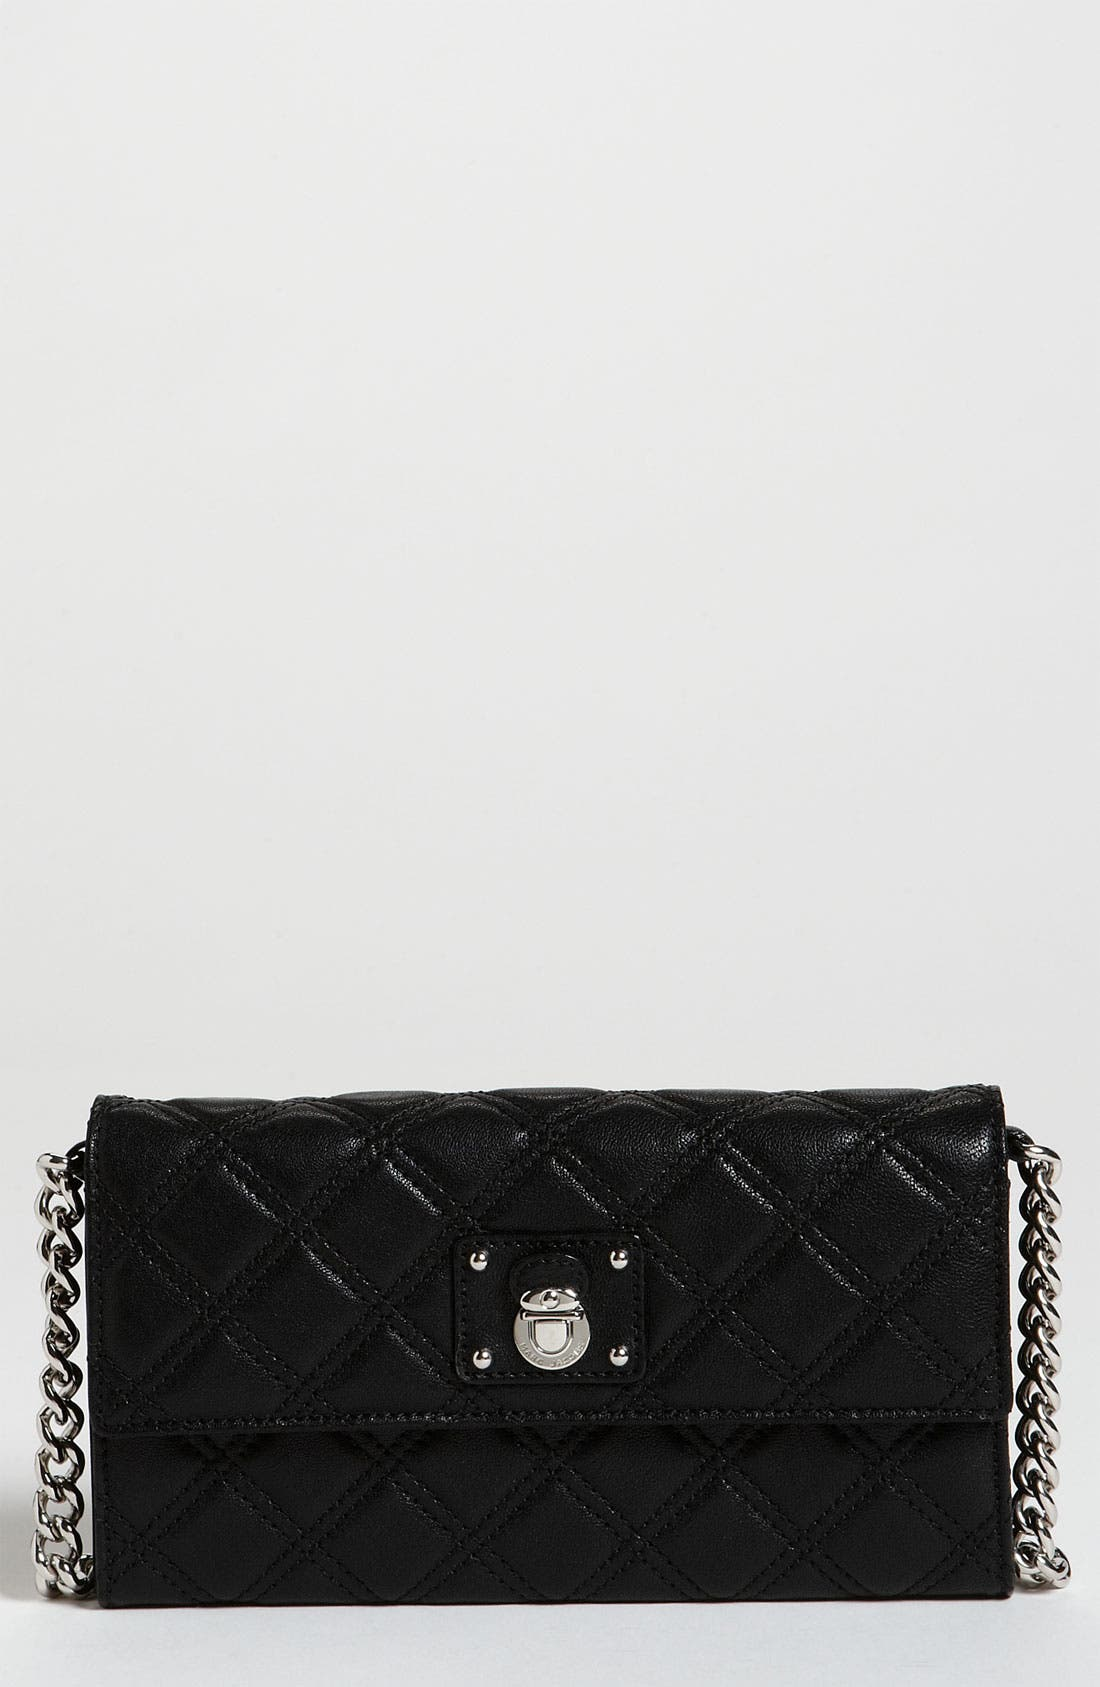 Main Image - MARC JACOBS 'Quilting Ginger' Leather Shoulder Bag